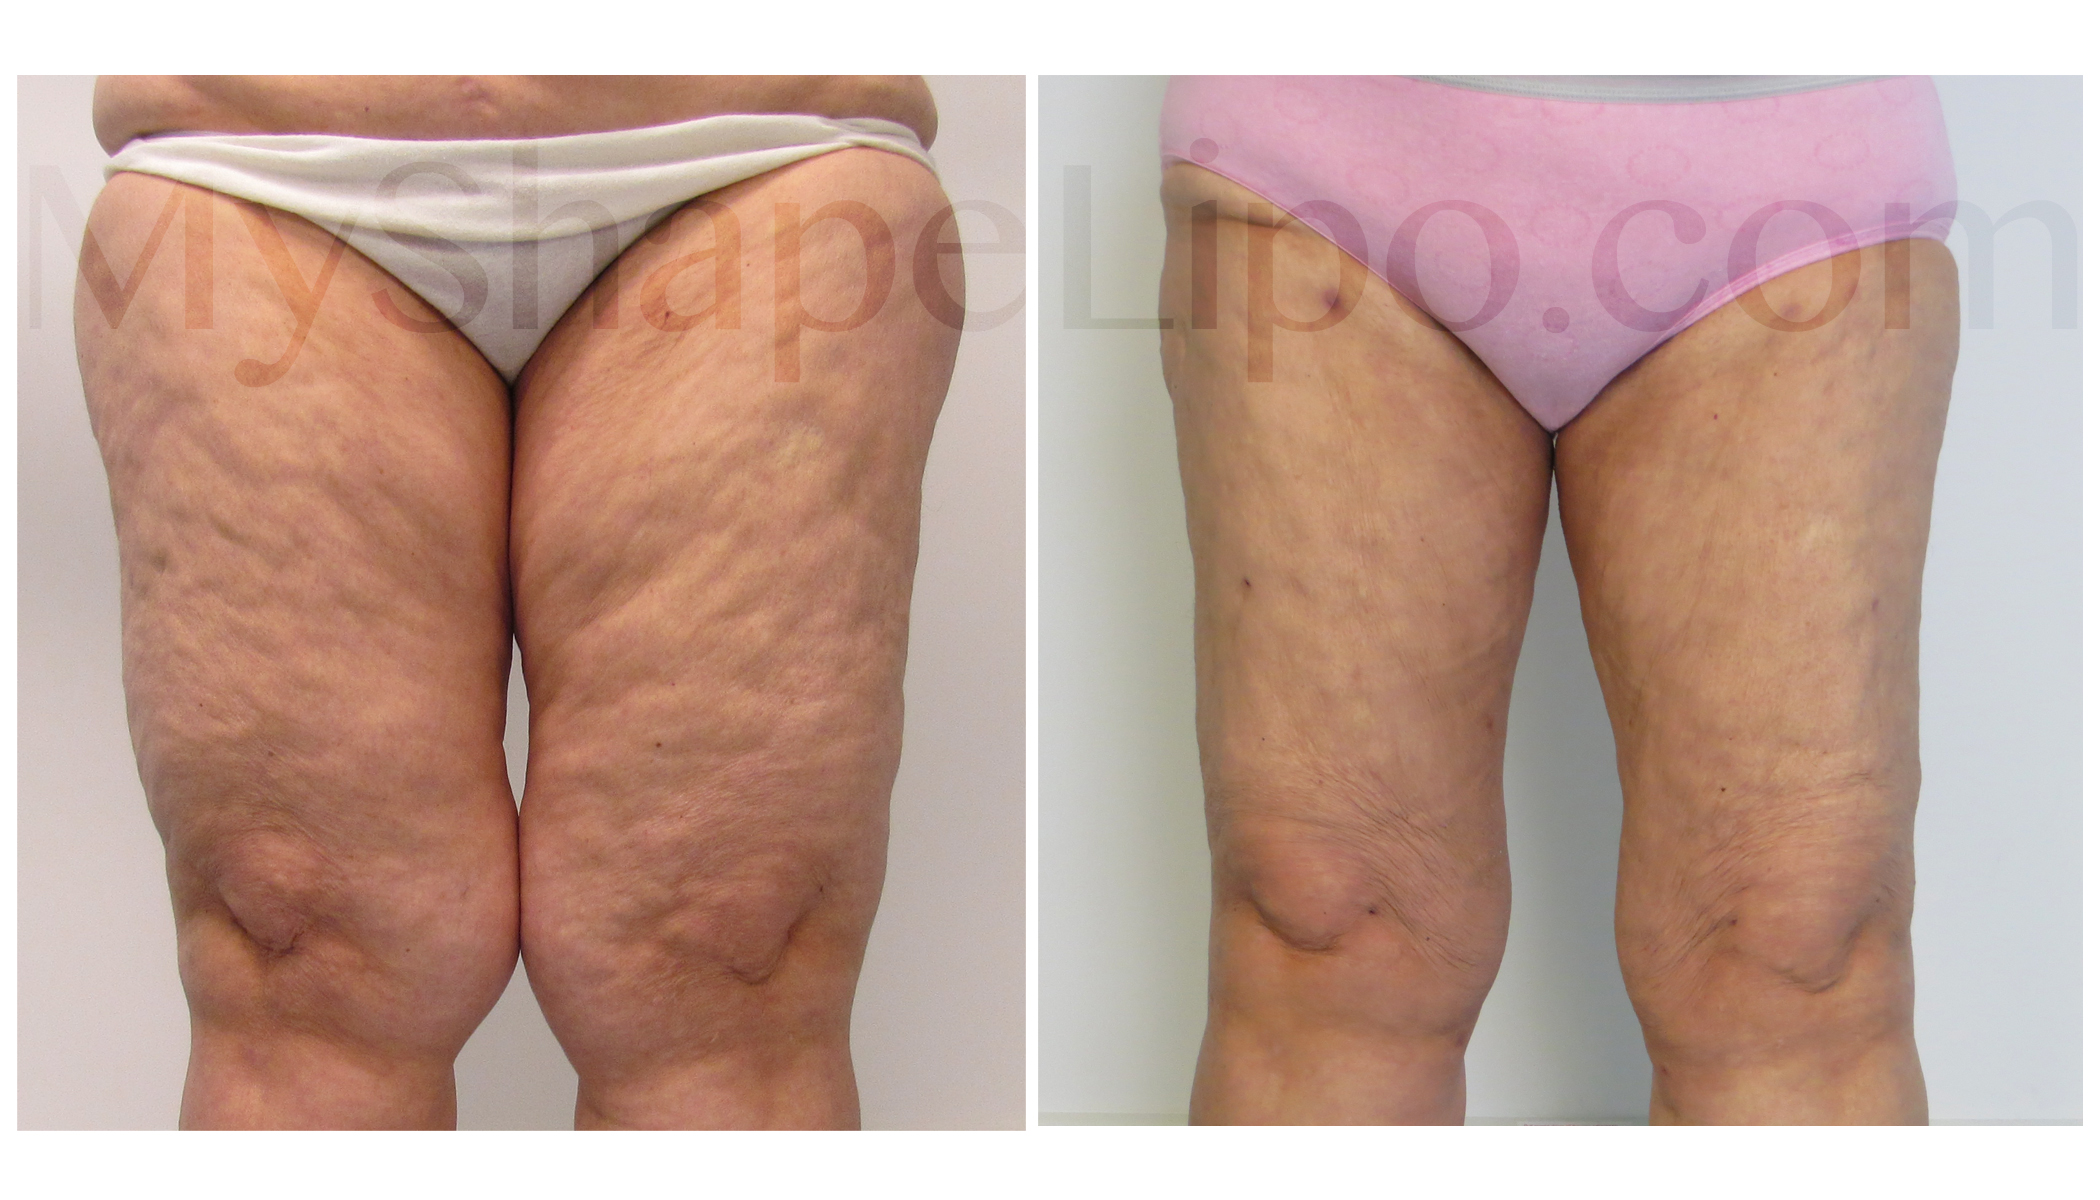 71 Year Old Liposuction Patient Proves It S Never Too Late To Look And Feel Good About Your Body